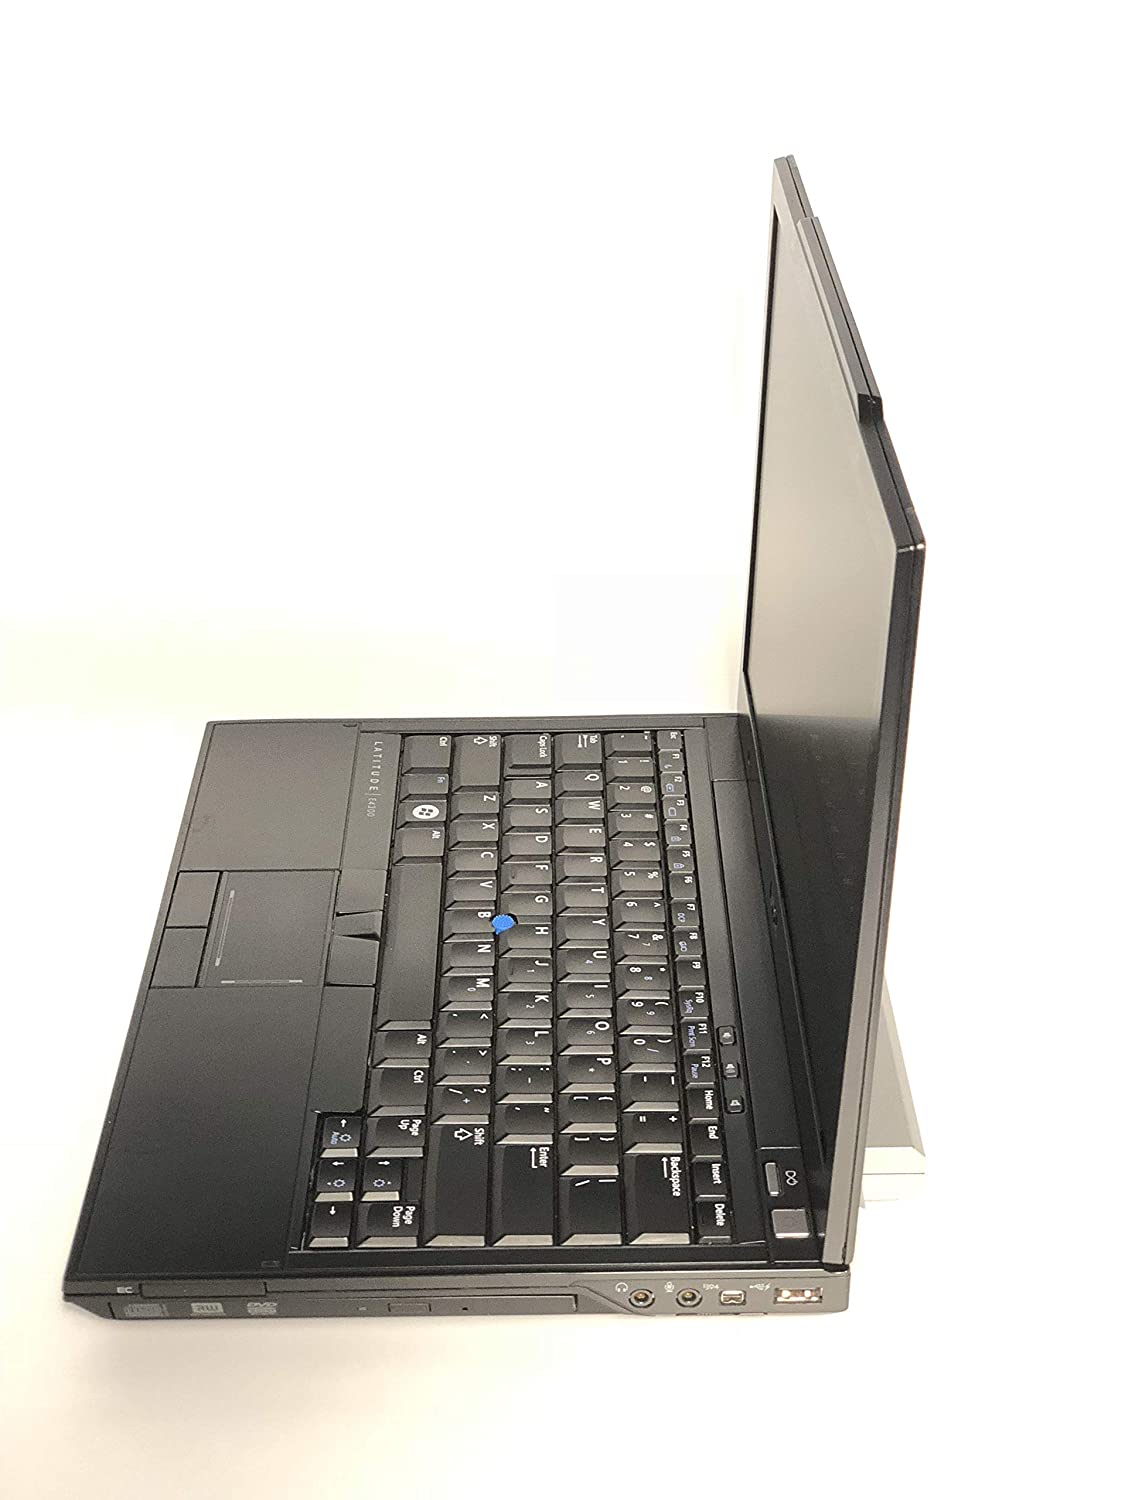 "Amazon.com: Dell Latitude E4300 13.3"" Laptop (Intel Core 2 Duo 2.4Ghz,  160GB Hard Drive, 4096Mb RAM, DVDRW Drive, XP Profesional): Computers &  Accessories"